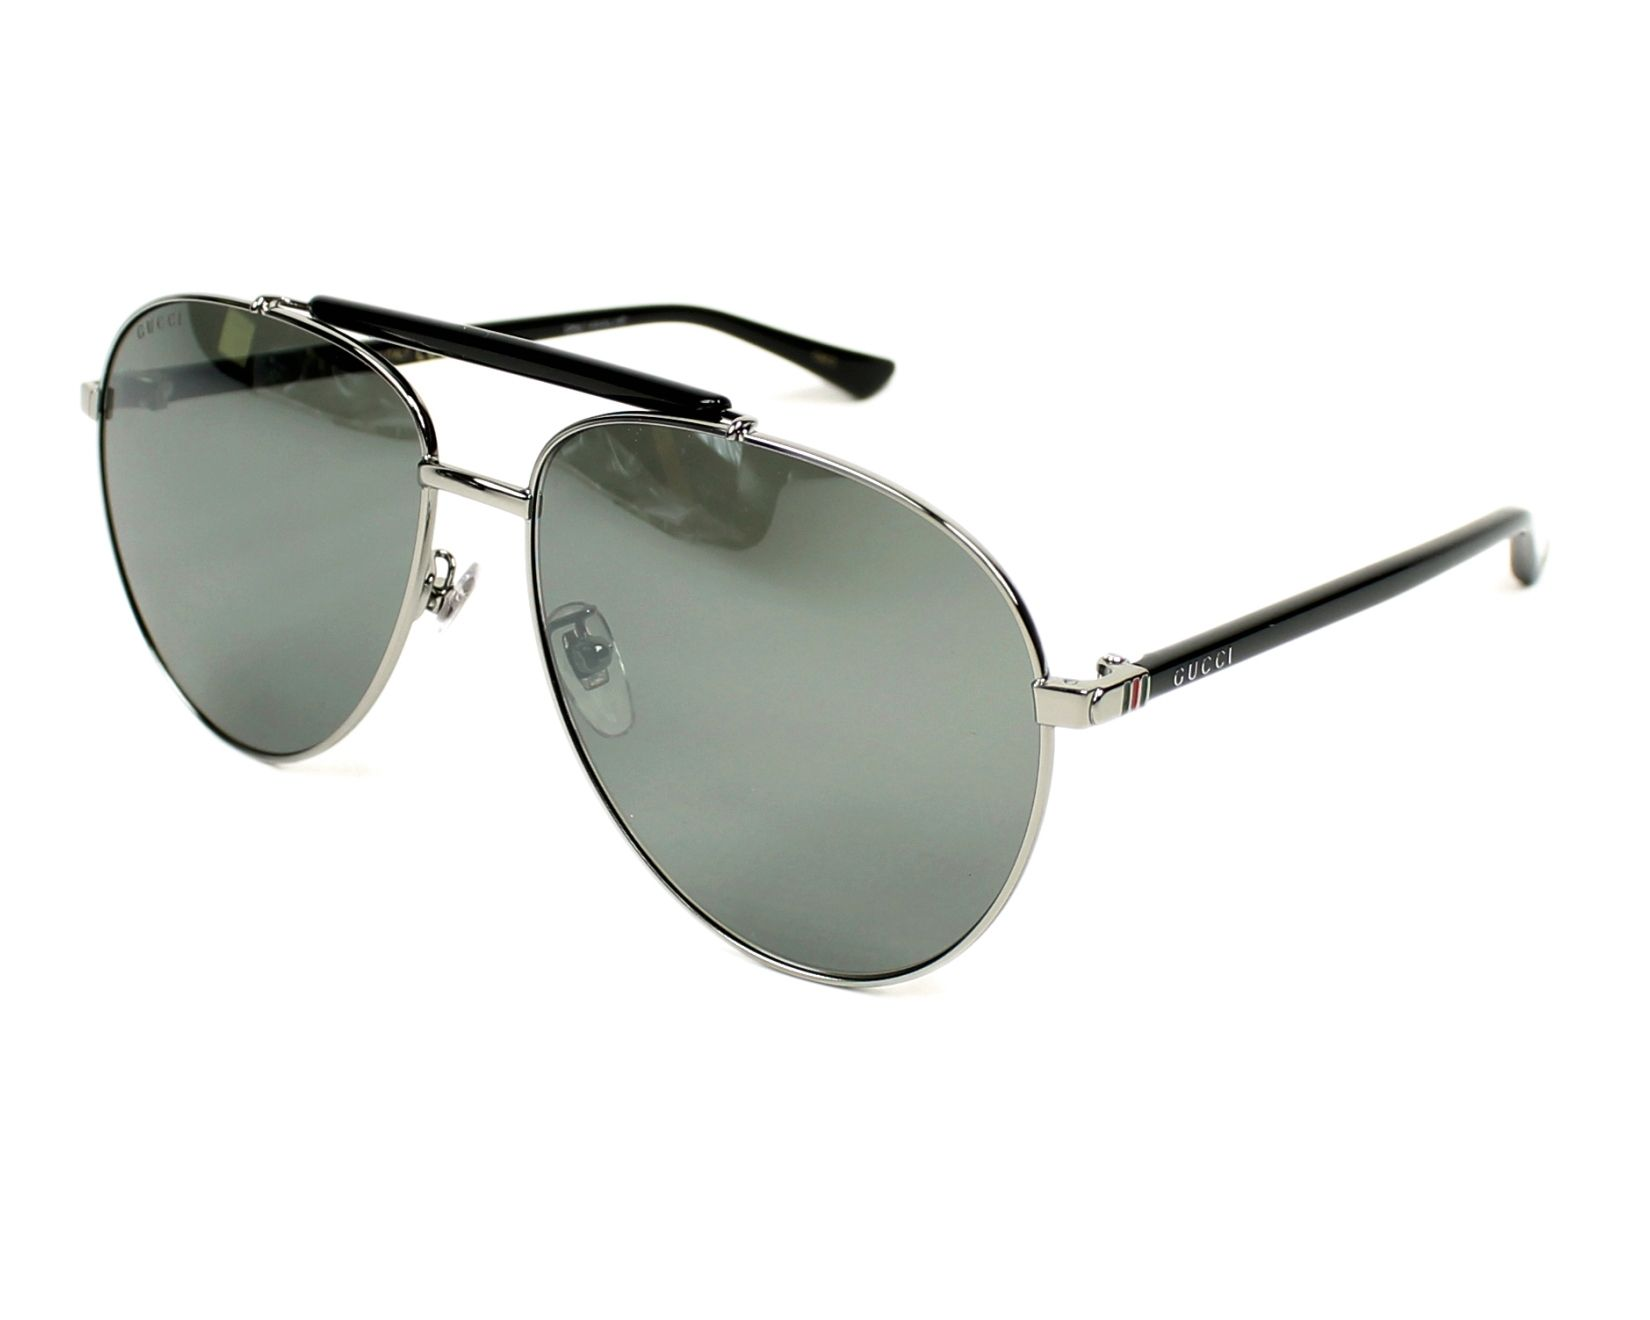 1874337c012 Sunglasses Gucci GG-0014-S 001 60-15 Black Silver profile view